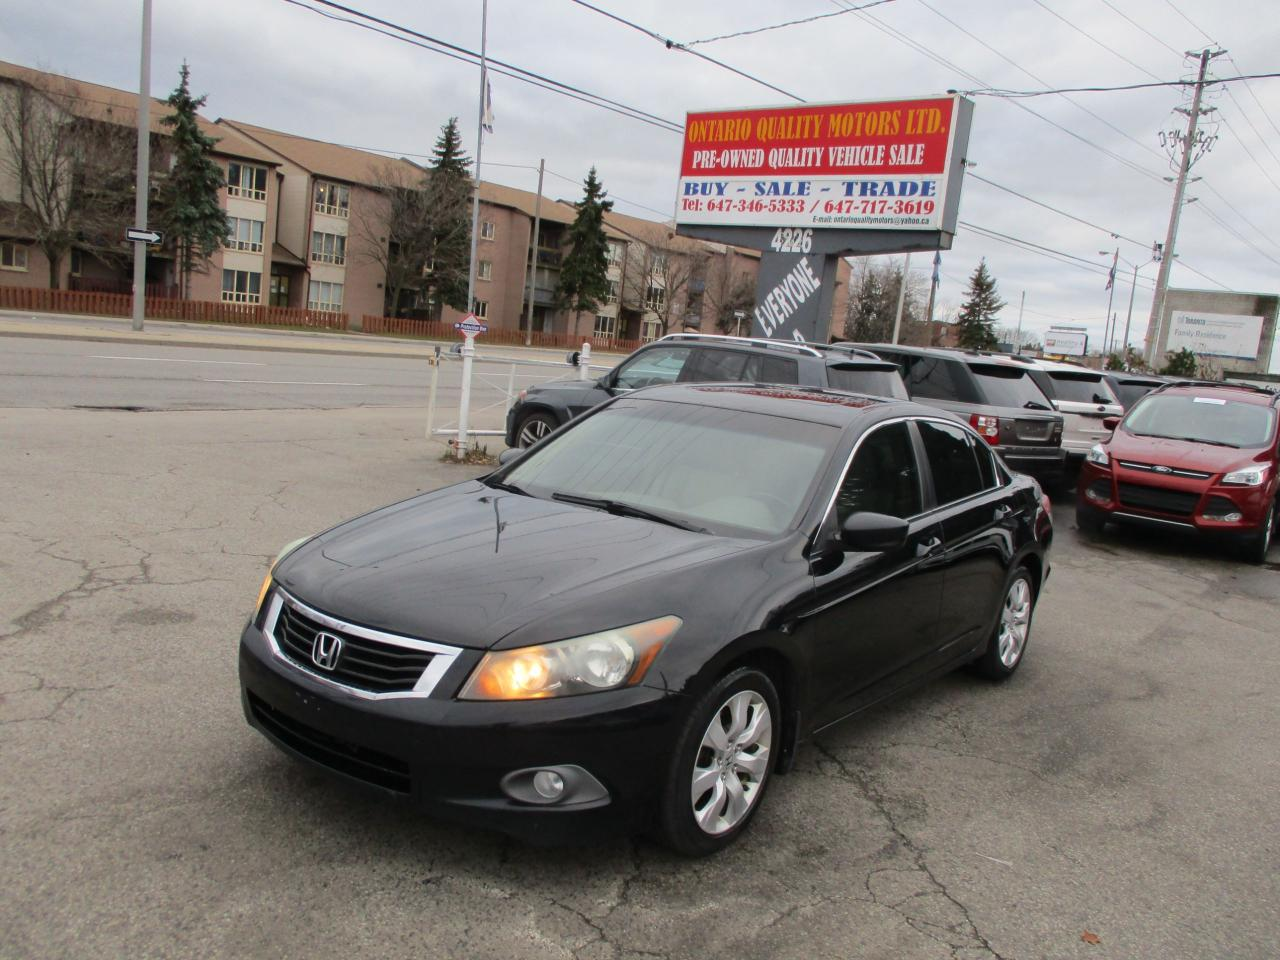 Ontario Quality Motors >> Used 2009 Honda Accord Ex L Sunroof Leather Clean Clean